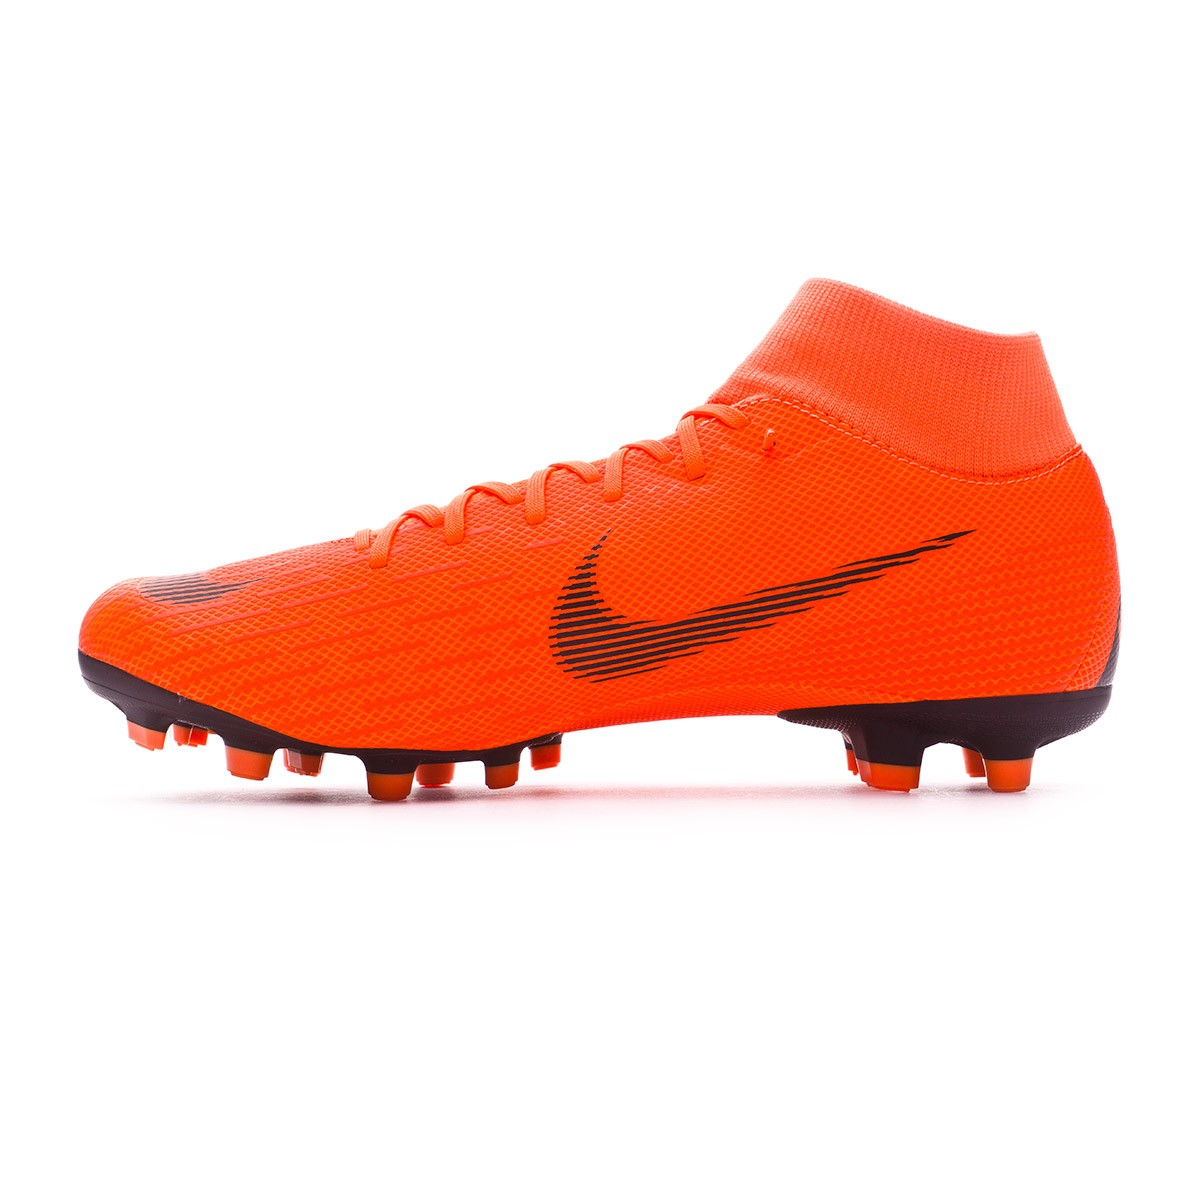 new concept e58f8 9c12f Bota de fútbol Nike Mercurial Superfly VI Academy MG Total  orange-Black-Total orange-Volt - Tienda de fútbol Fútbol Emotion